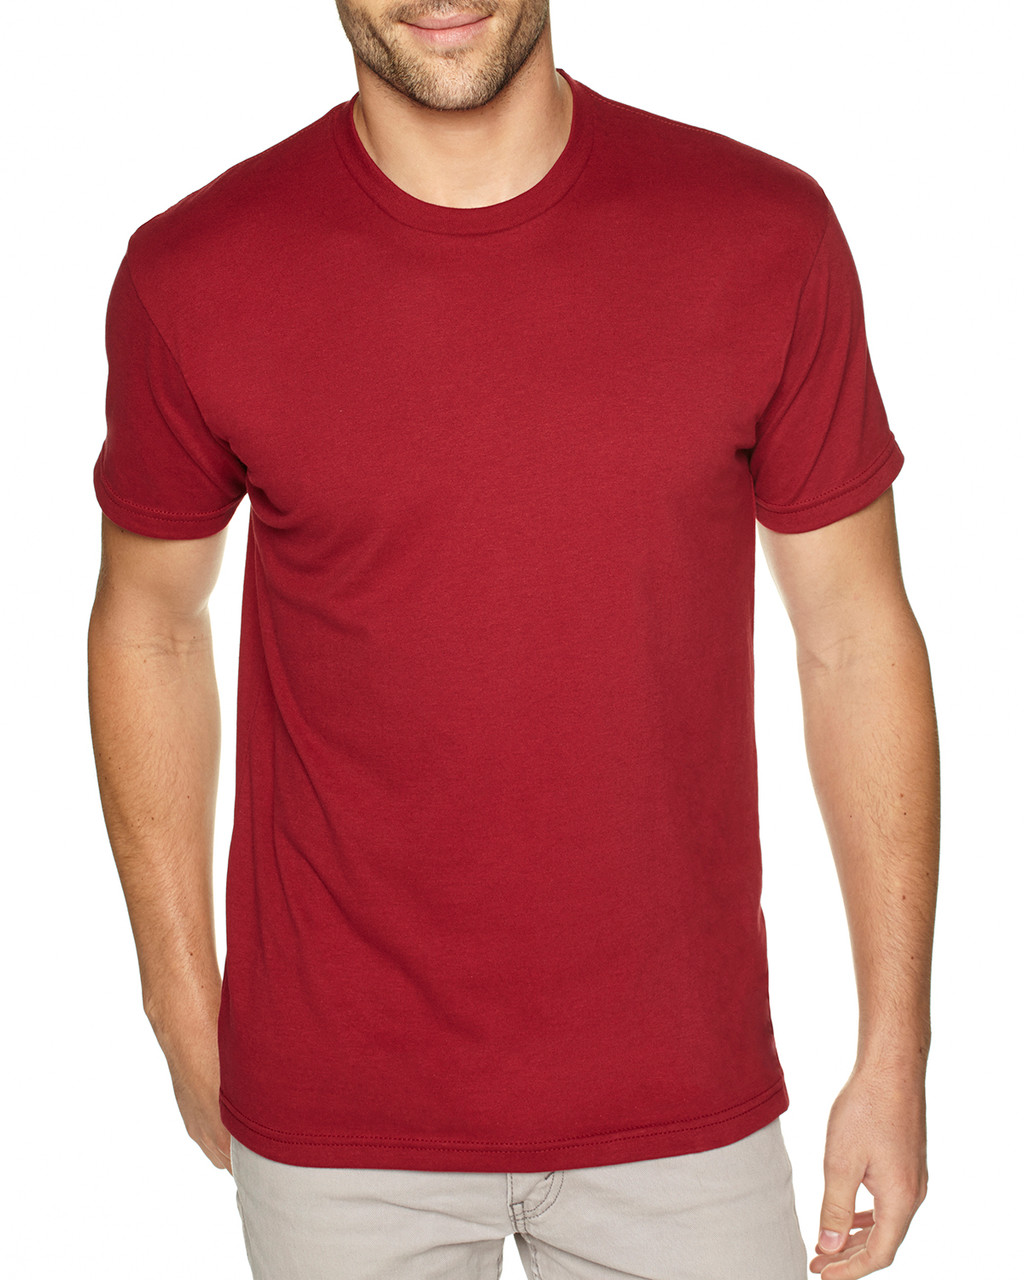 Cardinal - 6410 Next Level Men's Premium Fitted Sueded T-Shirt | Blankclothing.ca